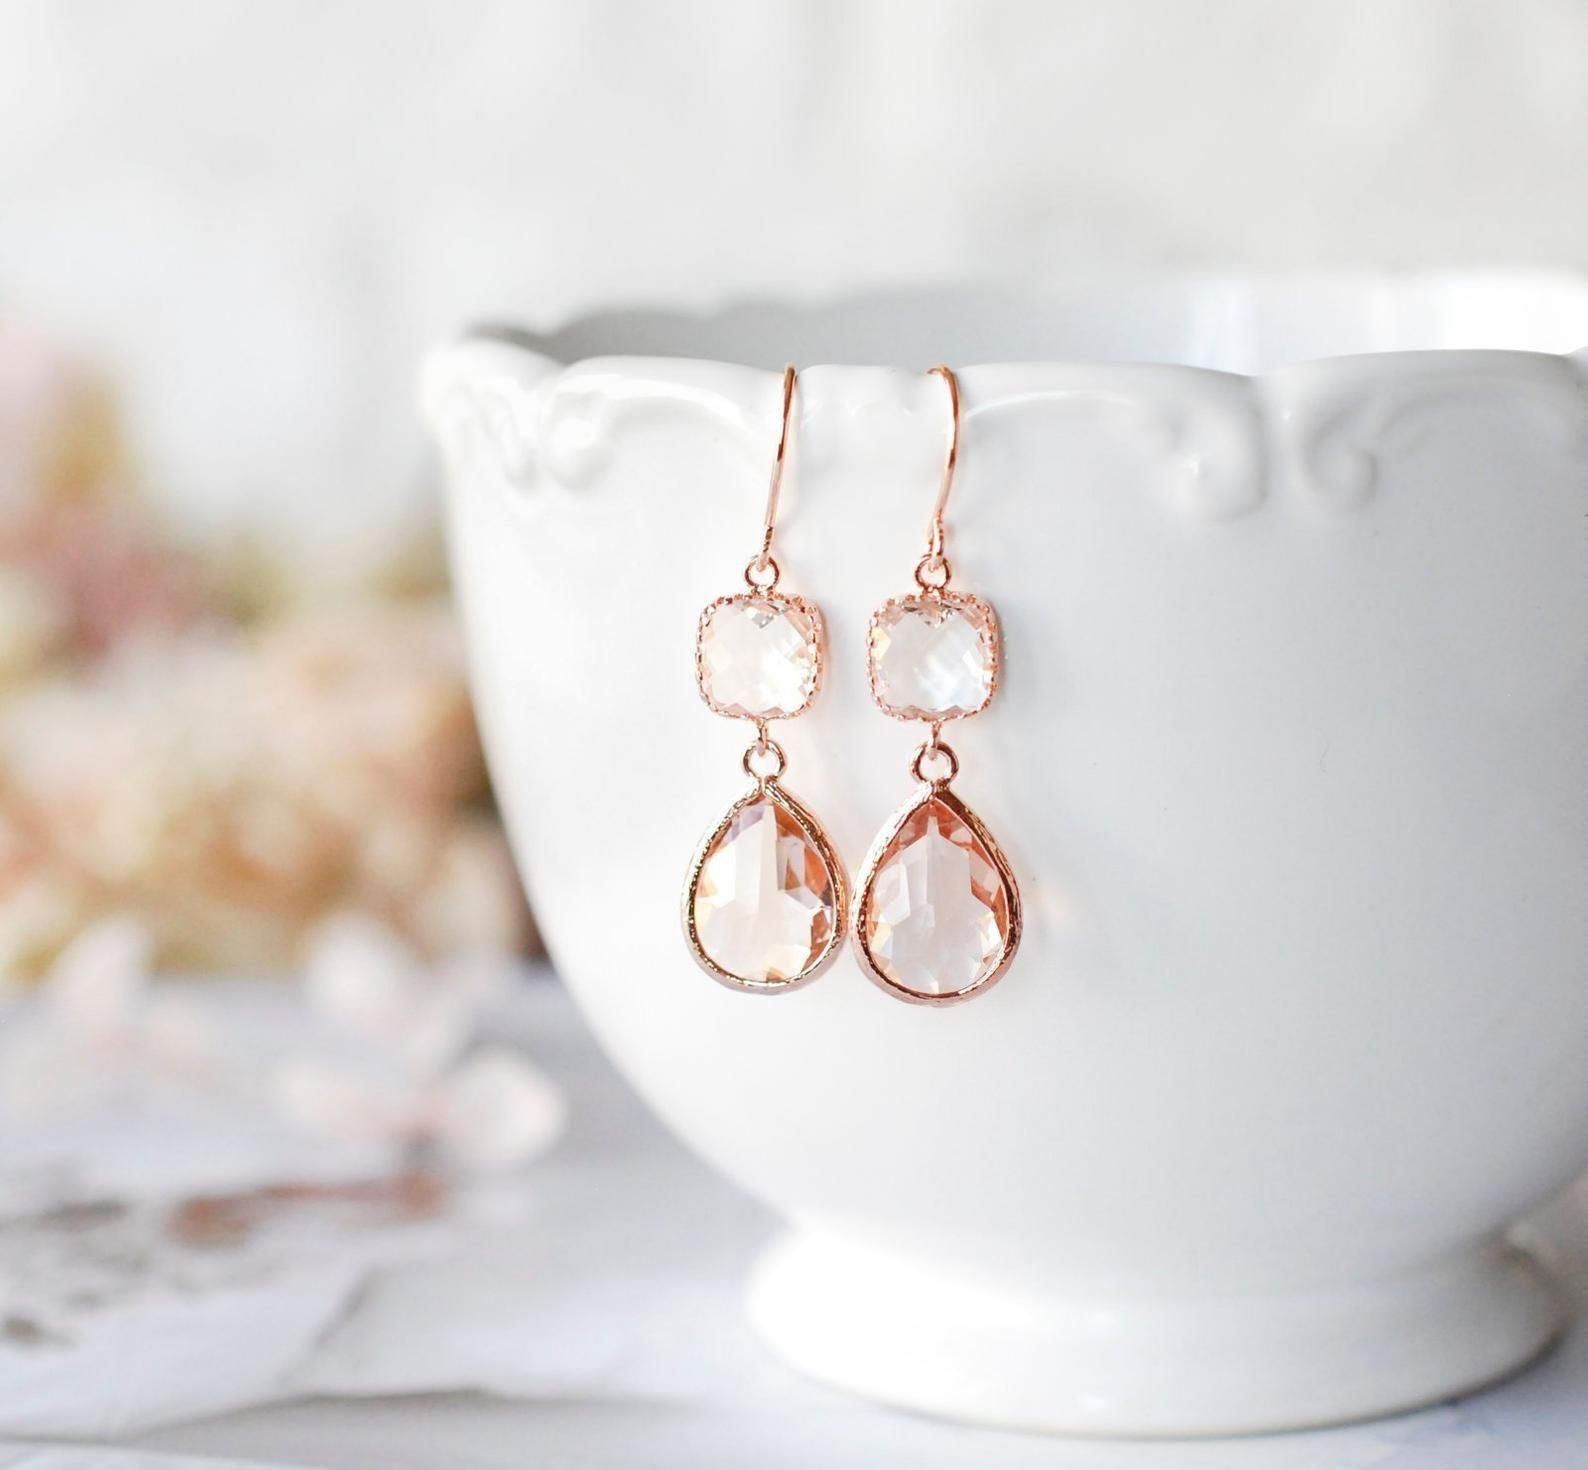 Rose Gold Earrings Peach Champagne Clear Crystal Earrings Etsy Clear Crystal Earrings Etsy Earrings Rose Gold Earrings